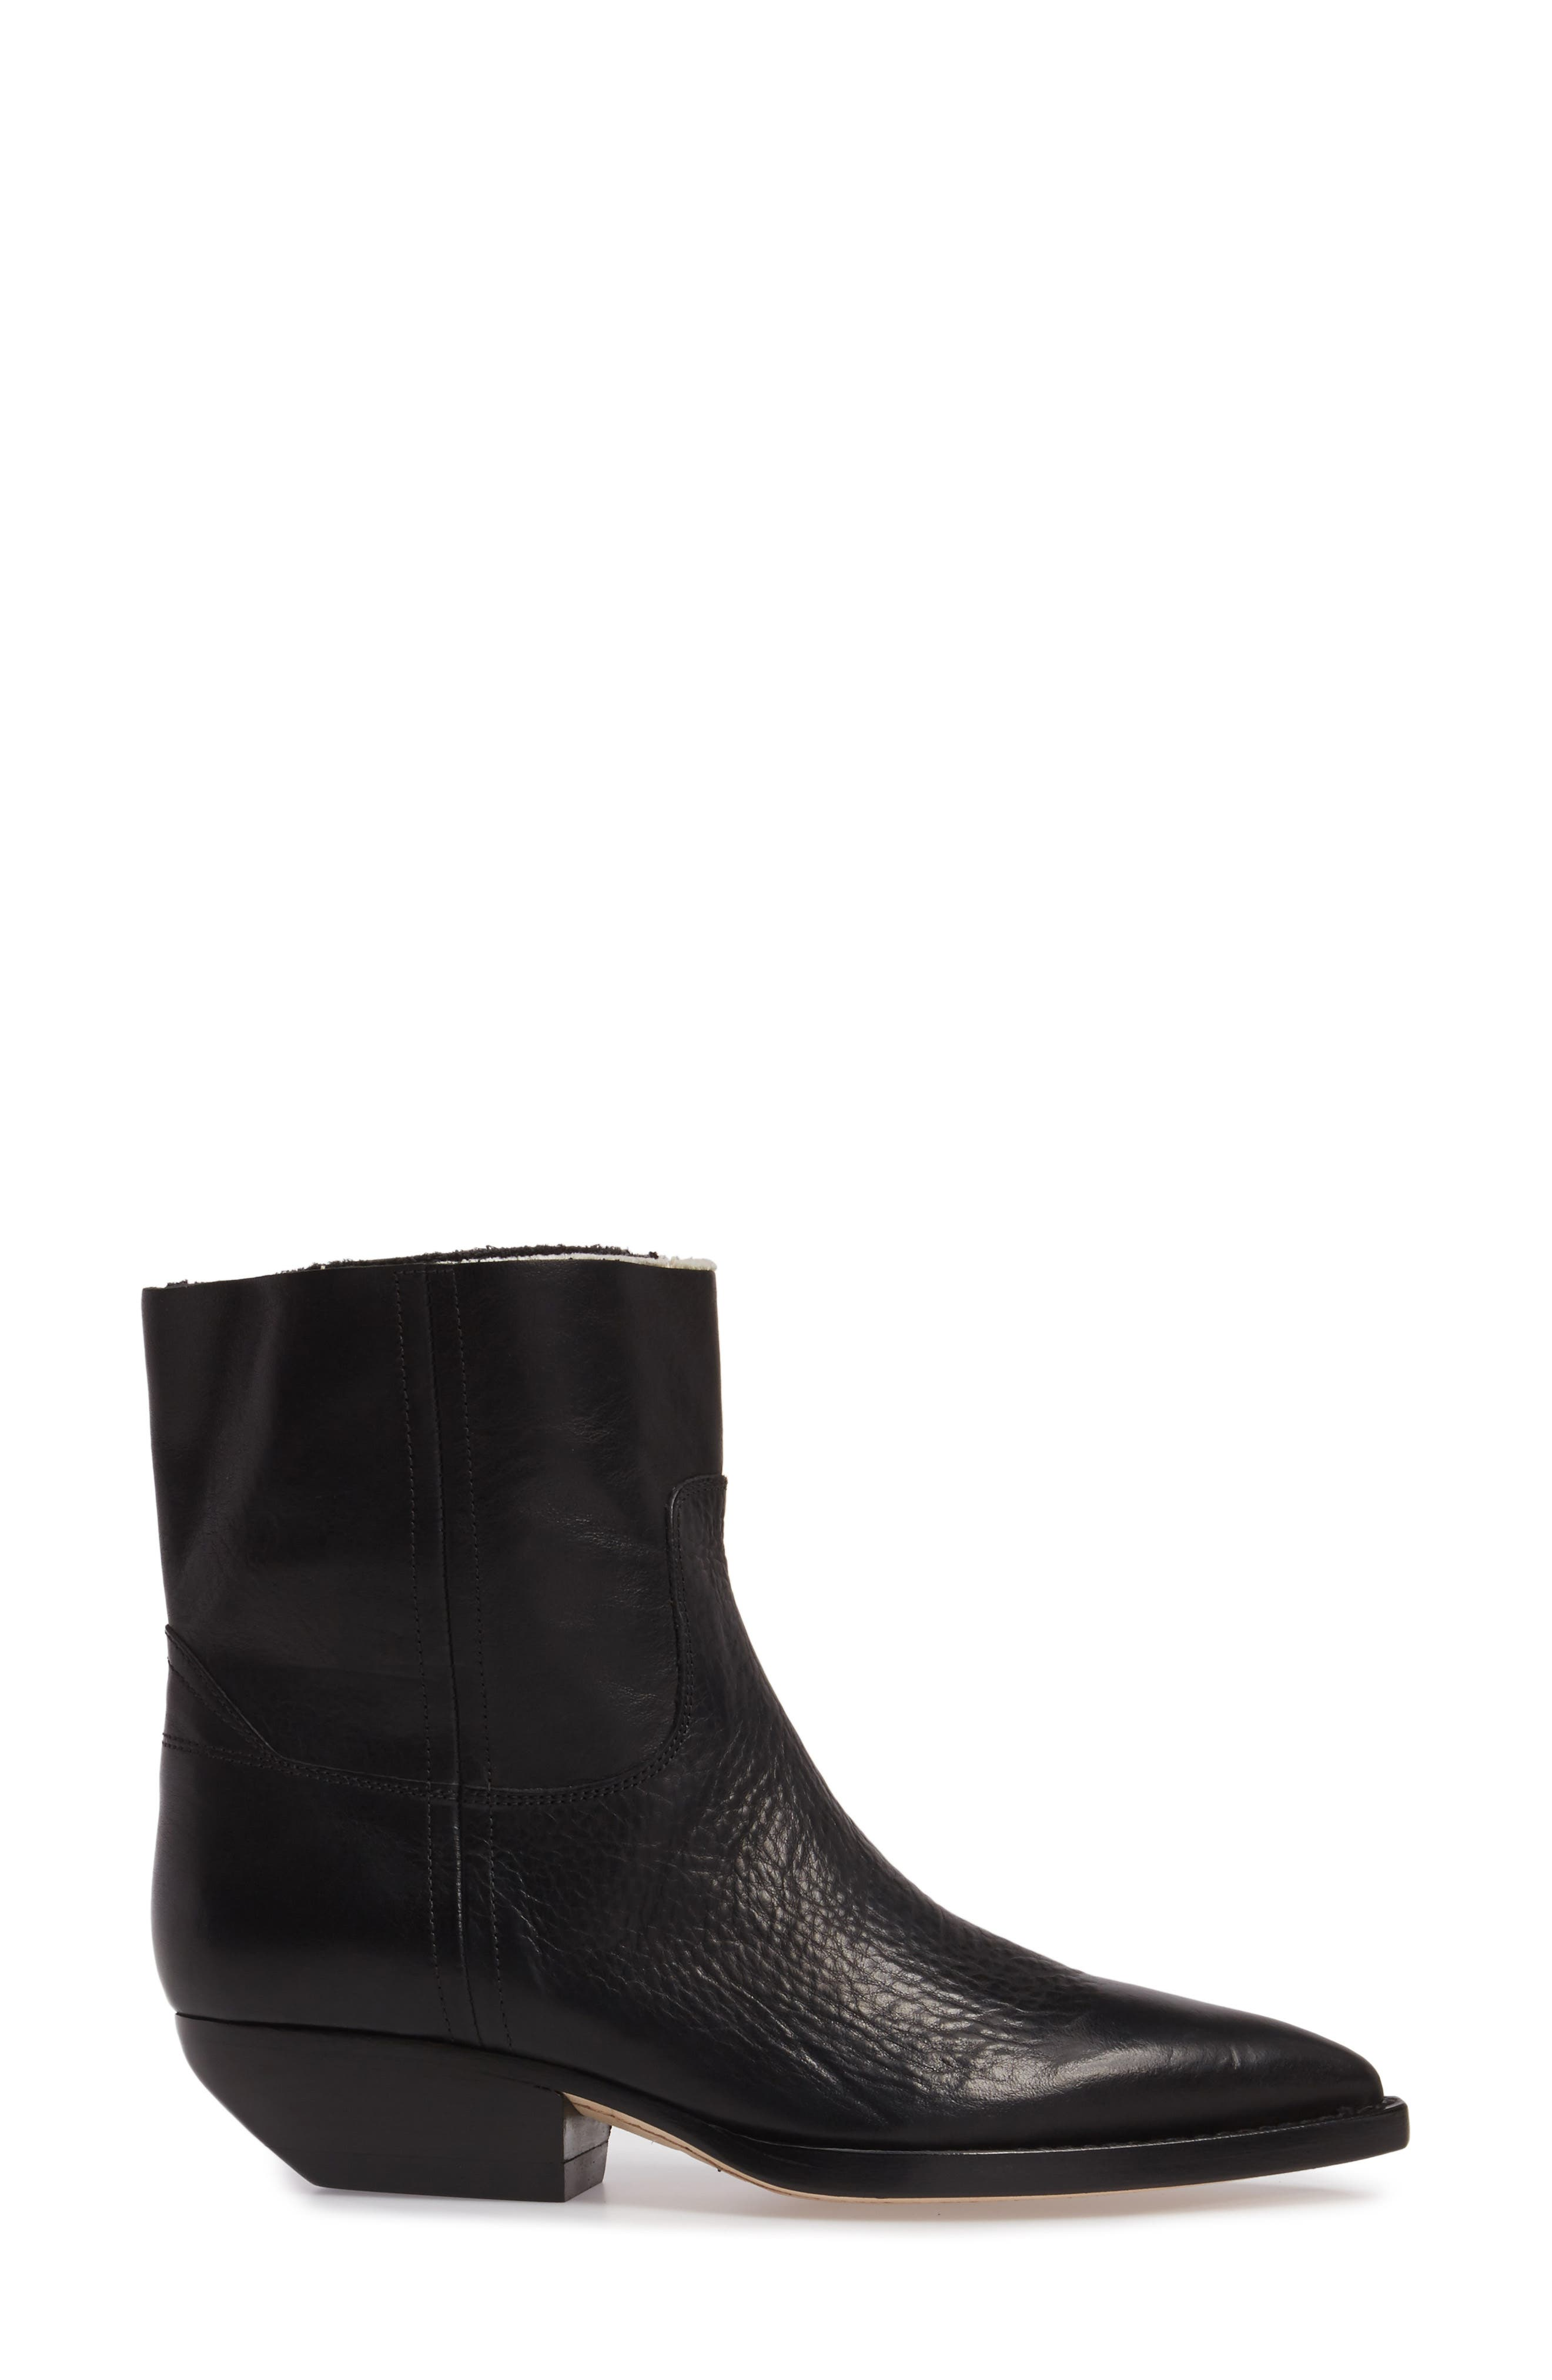 Theo Eli Western Bootie,                             Alternate thumbnail 3, color,                             Black